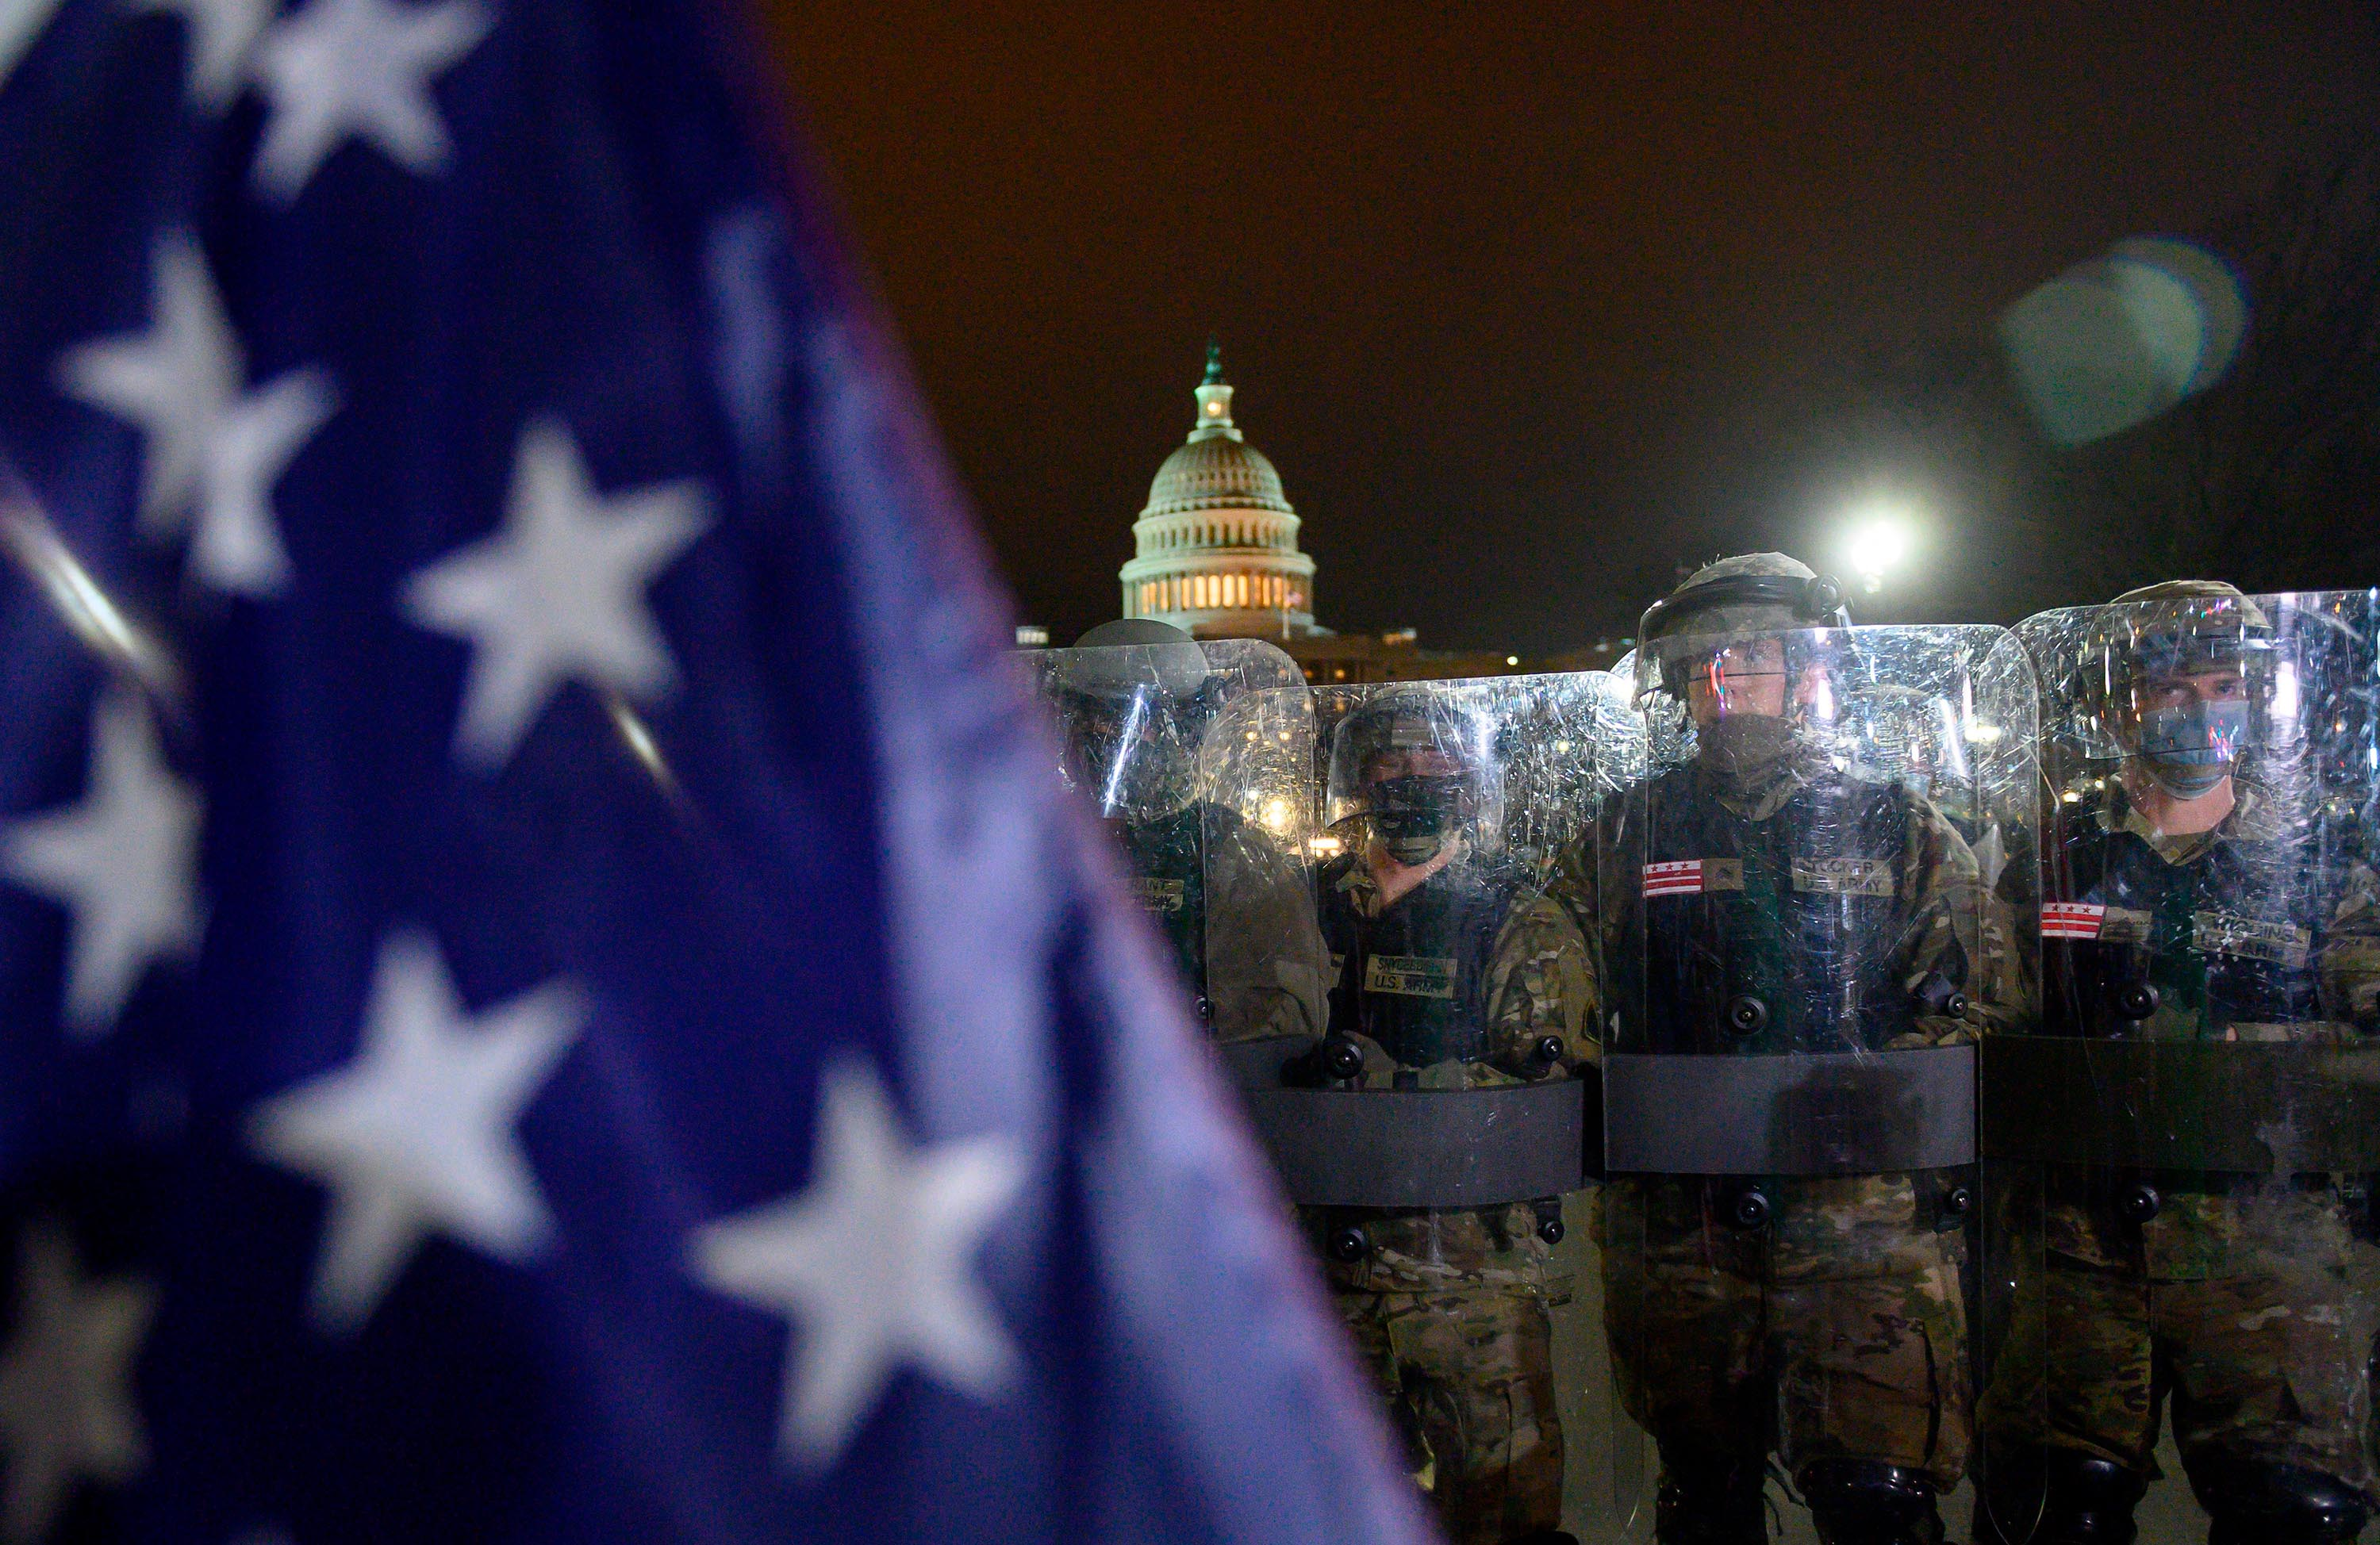 Members of the DC National Guard are deployed outside of the US Capitol in Washington DC on January 6, 2021.